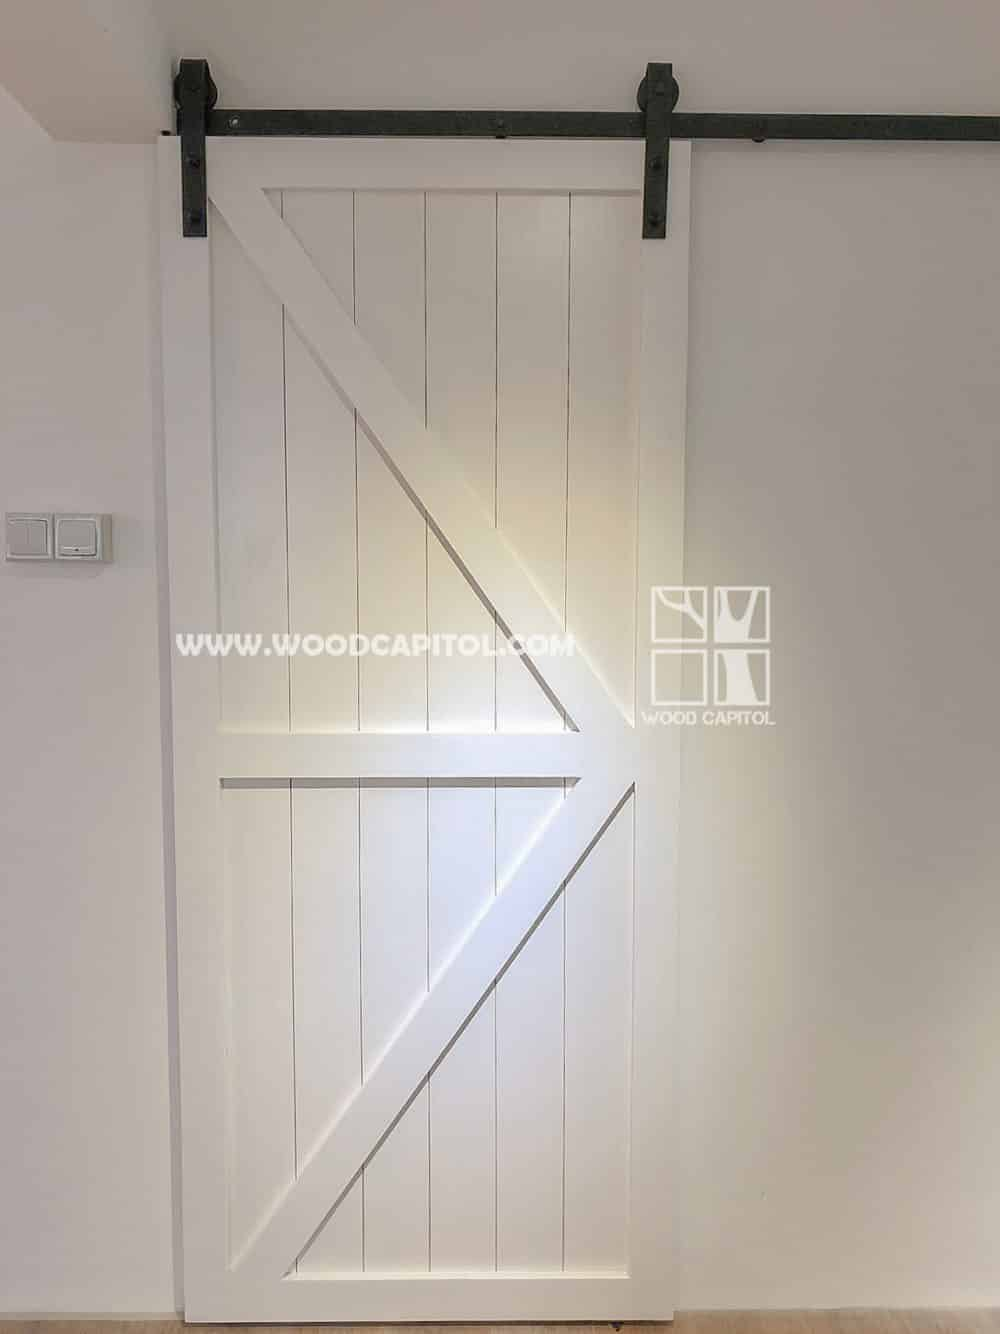 Wood Capitol White Arrow Barn Door